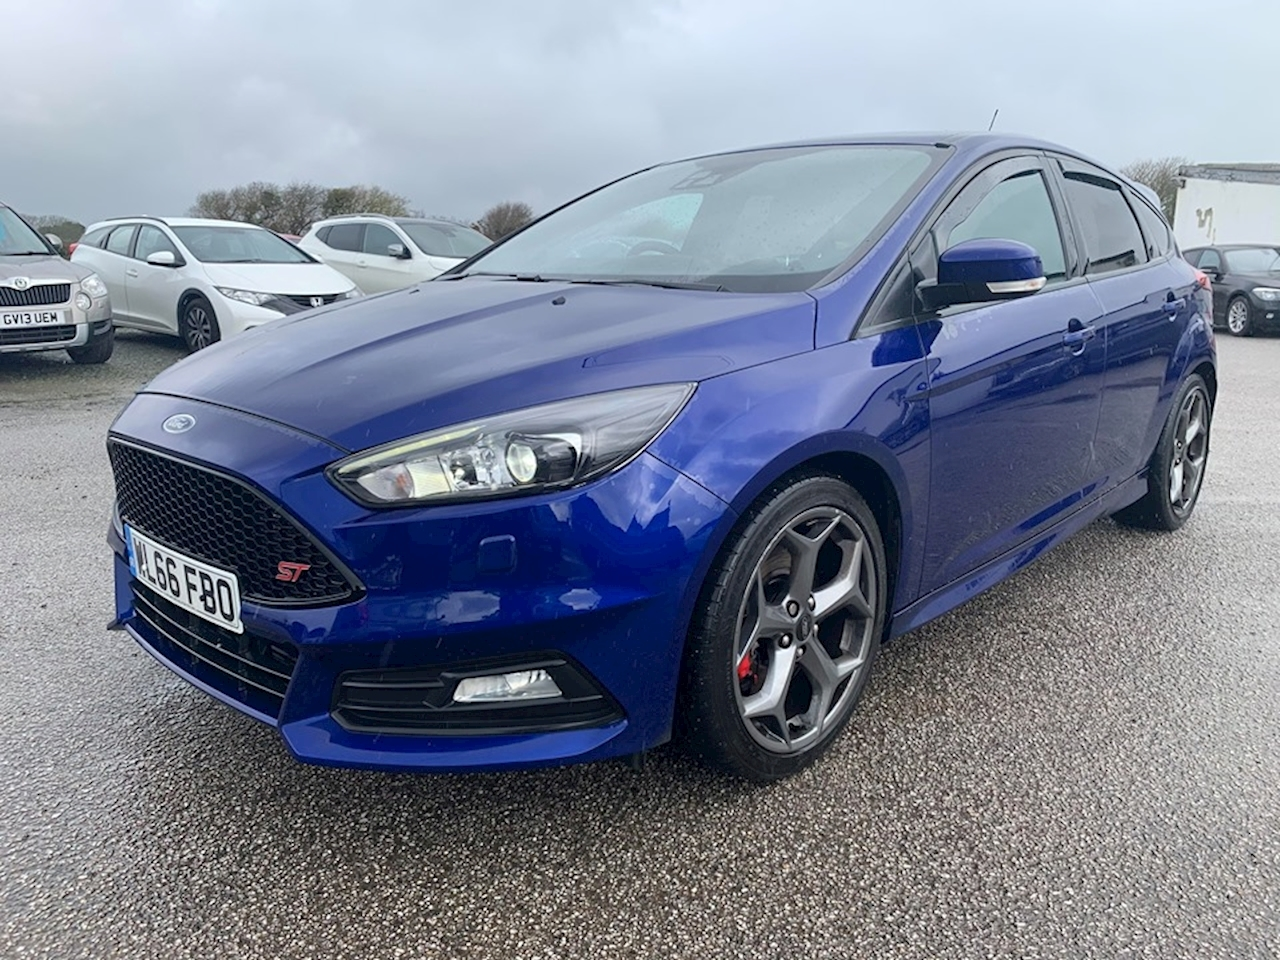 Ford Focus St-3 Hatchback 2.0 Manual Petrol